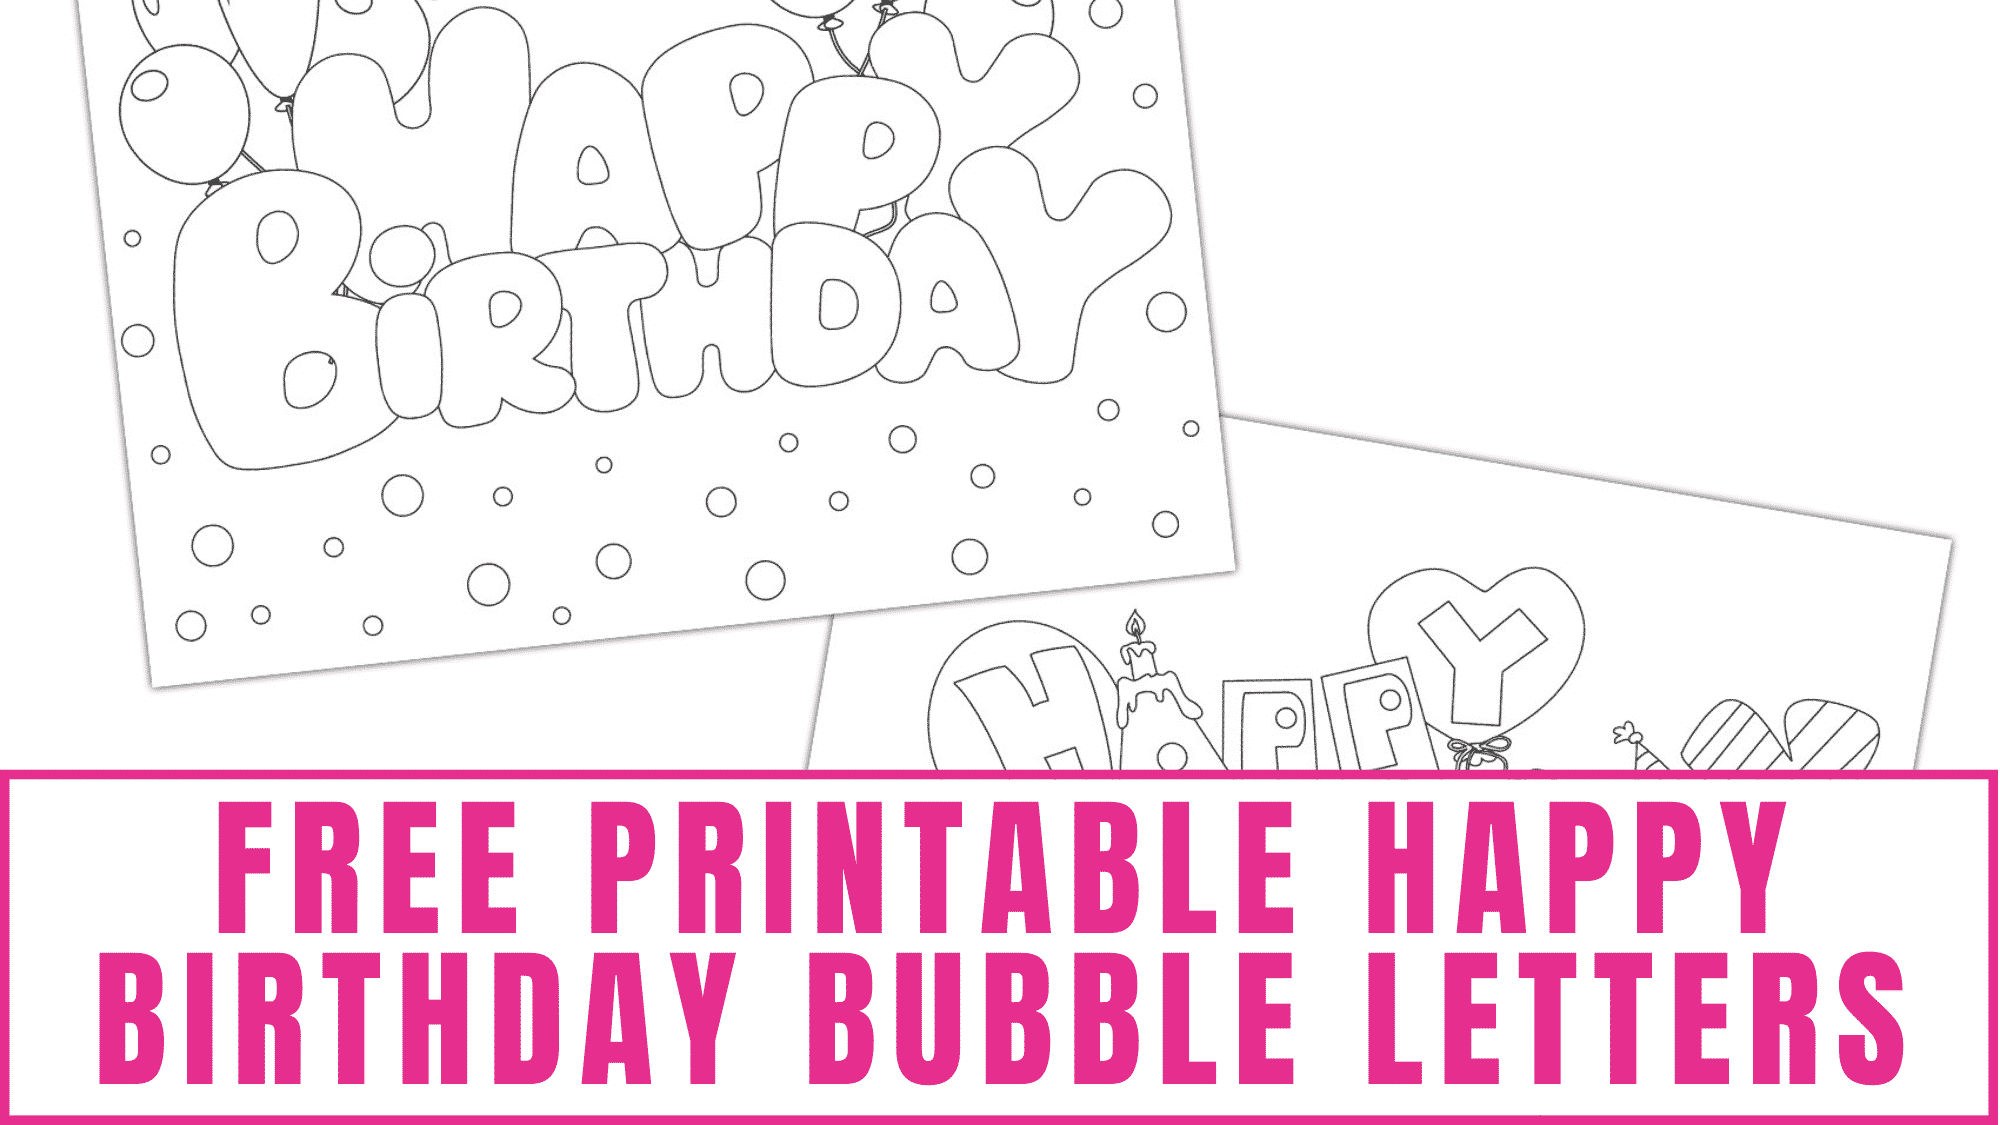 There's no need to spend money on pricey birthday decorations and gifts when you can use these free printable Happy Birthday bubble letters to make fun party signs or a DIY birthday card.